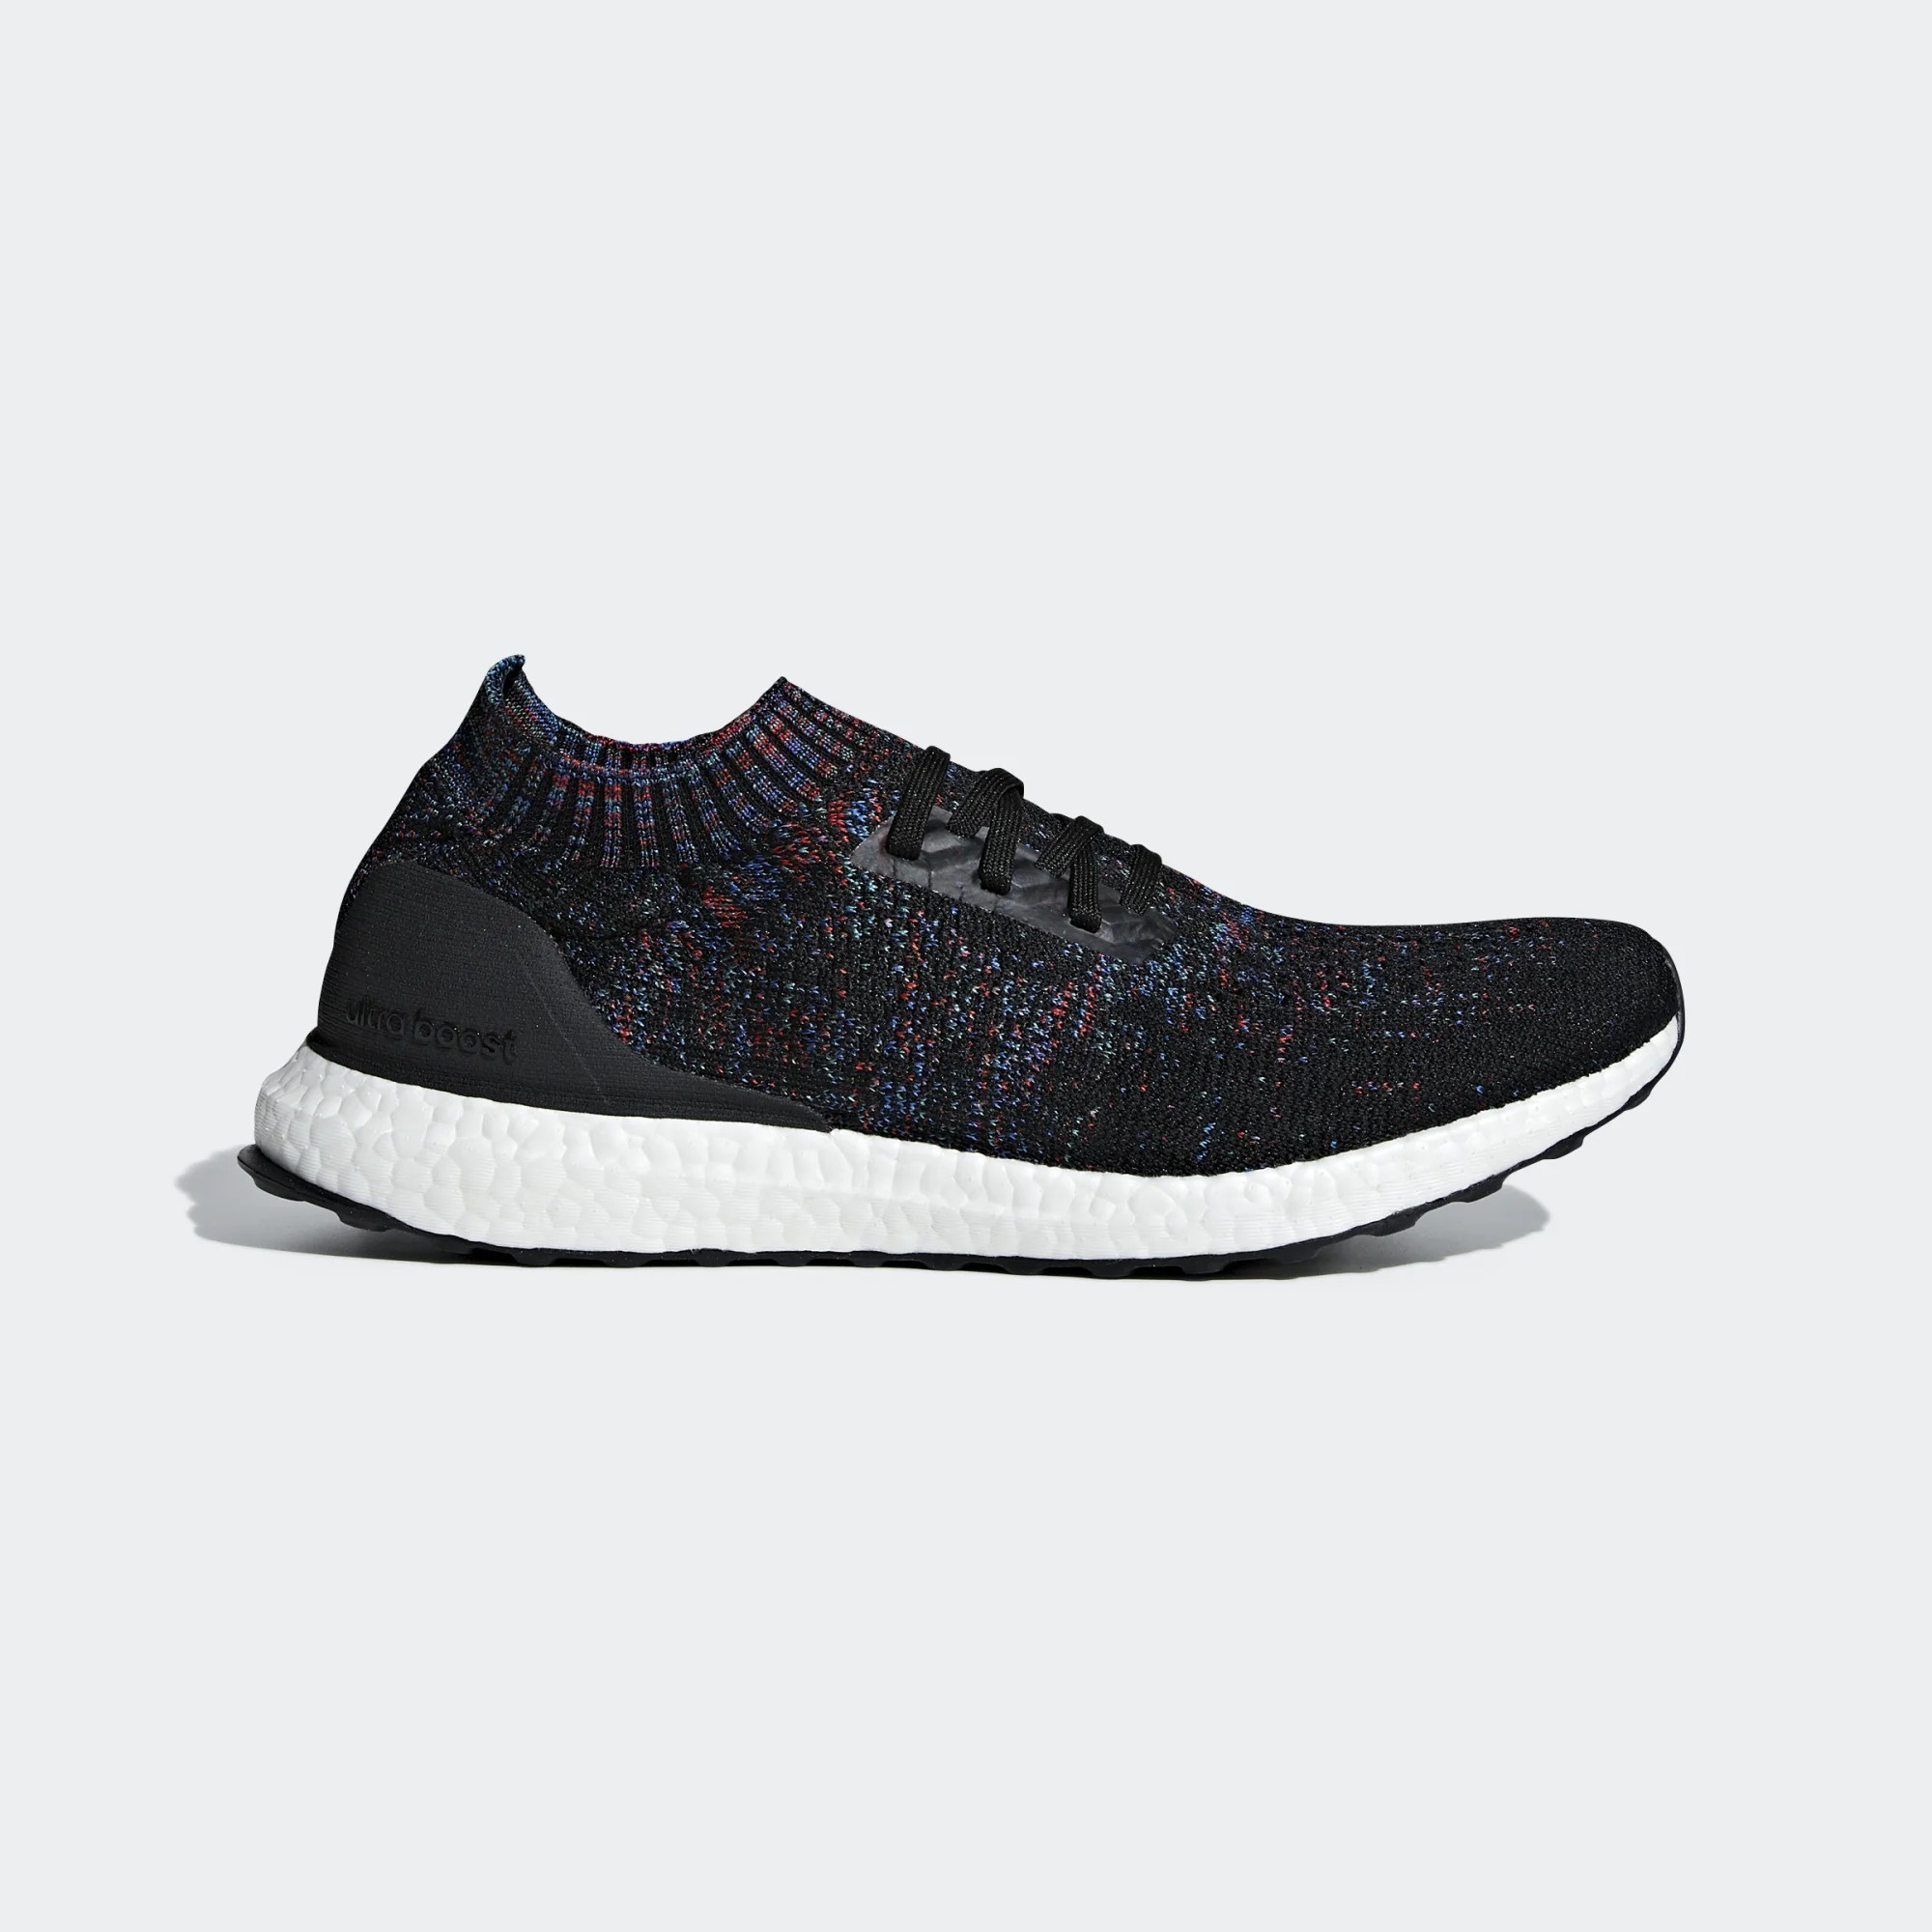 Adidas B37692 Men Ultra Boost Uncaged Running Shoes Black Red